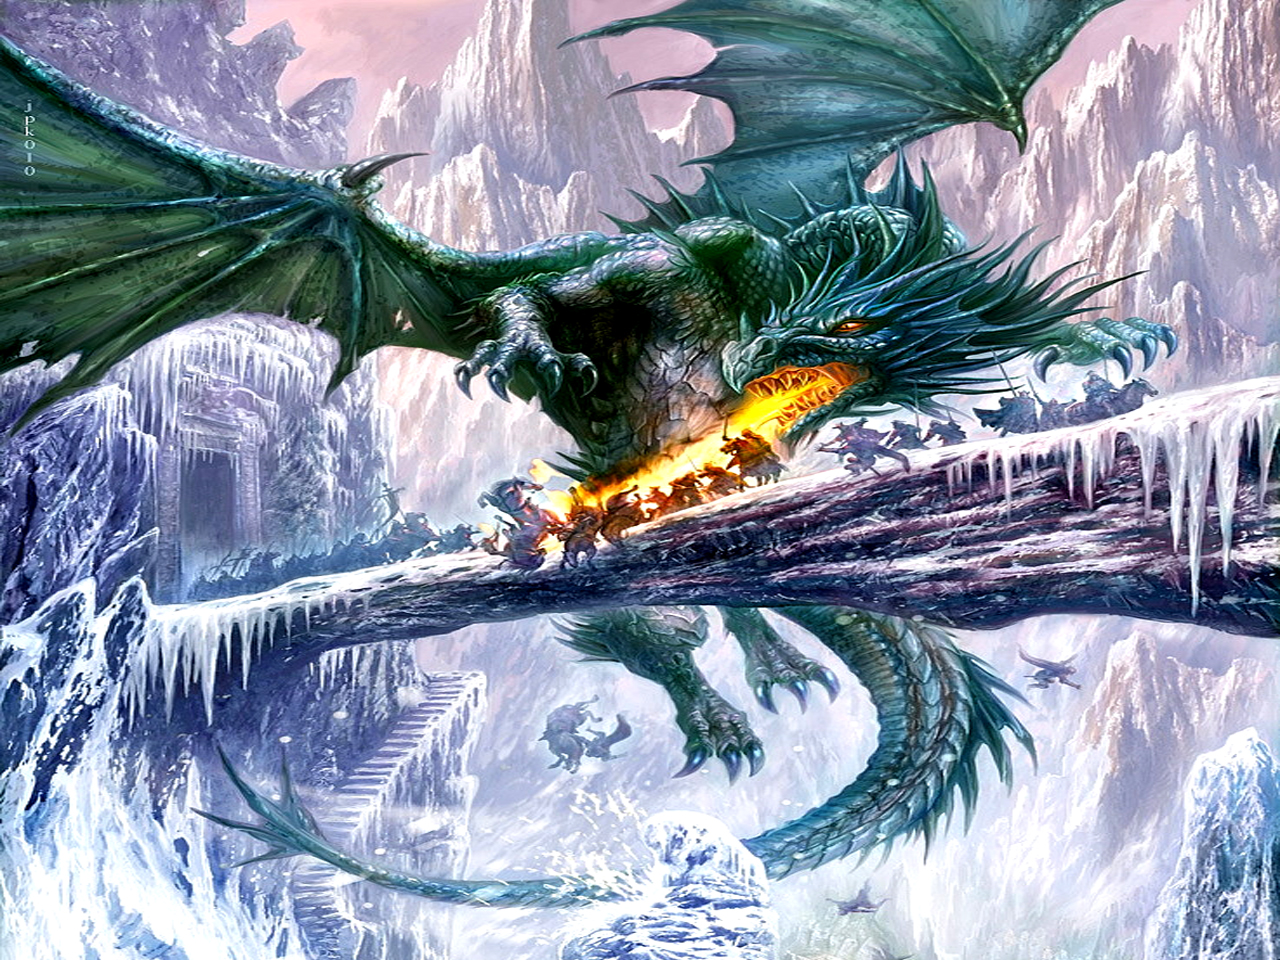 Drachen wallpapers